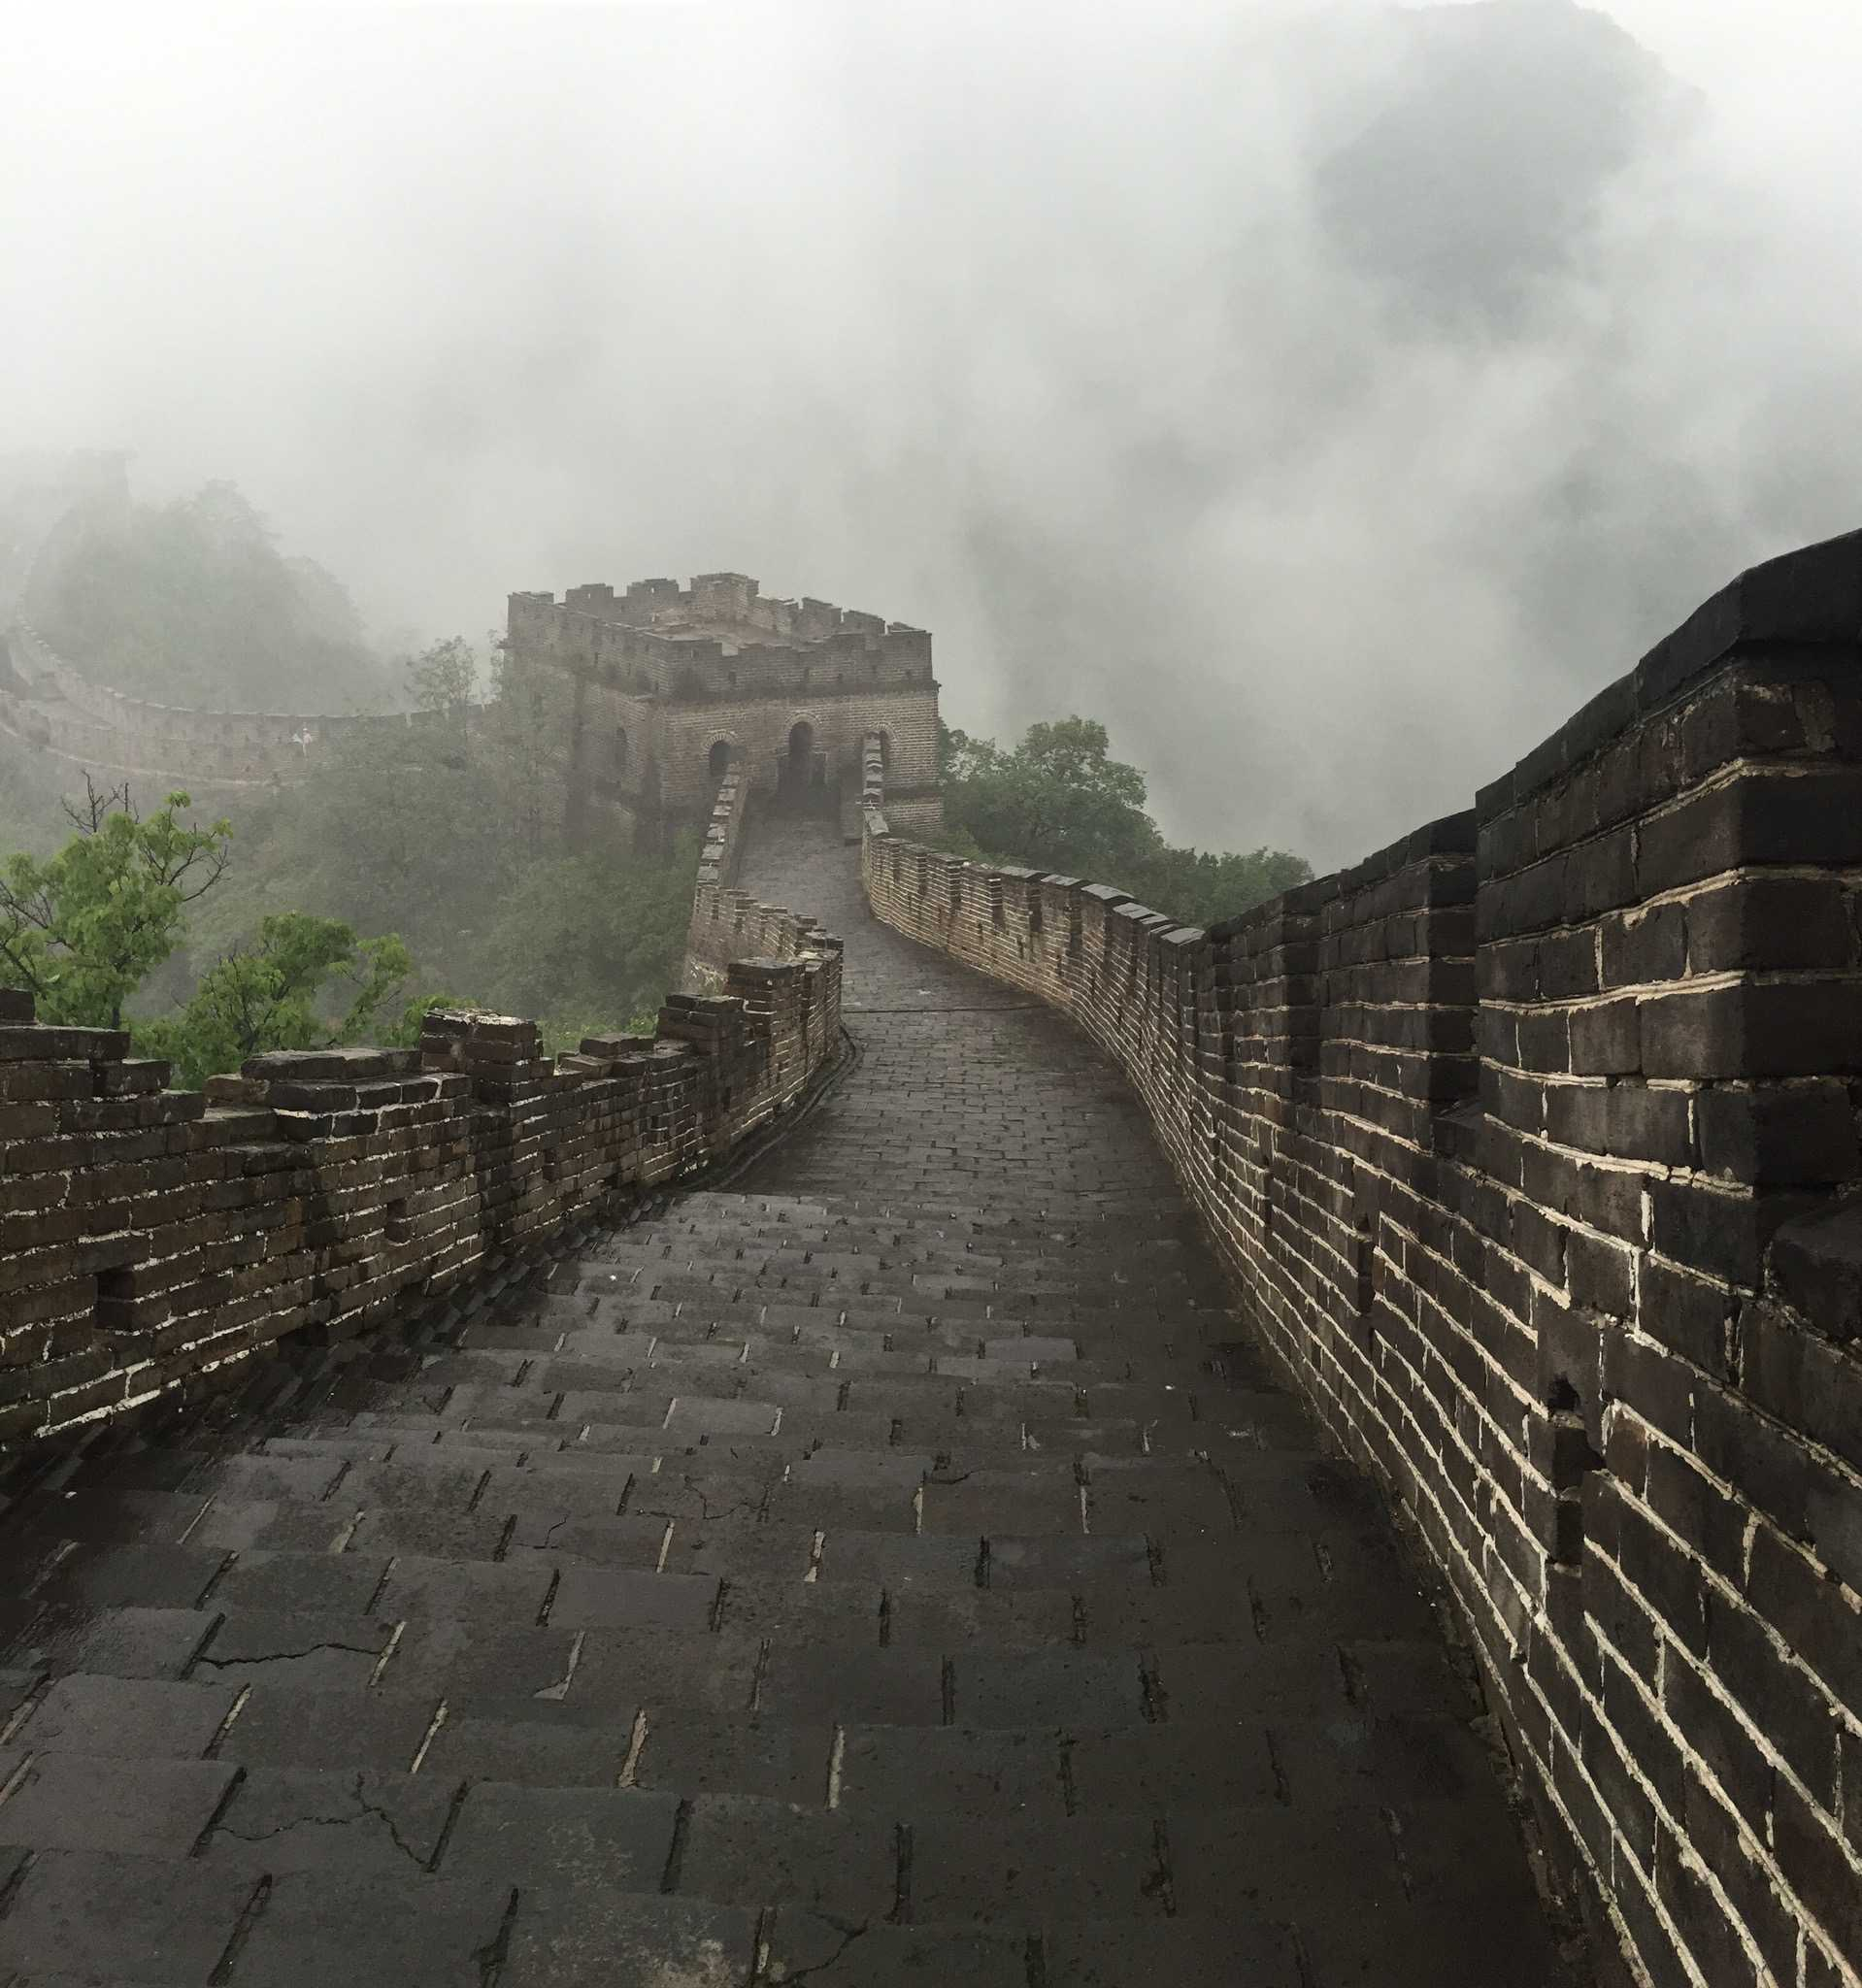 Dahlin%27s+photo+of+the+famous+5%2C500+mile+Great+Wall+of+China+on+her+trip+to+Asia.+Photographer%3A+Theresa+Dahlin.